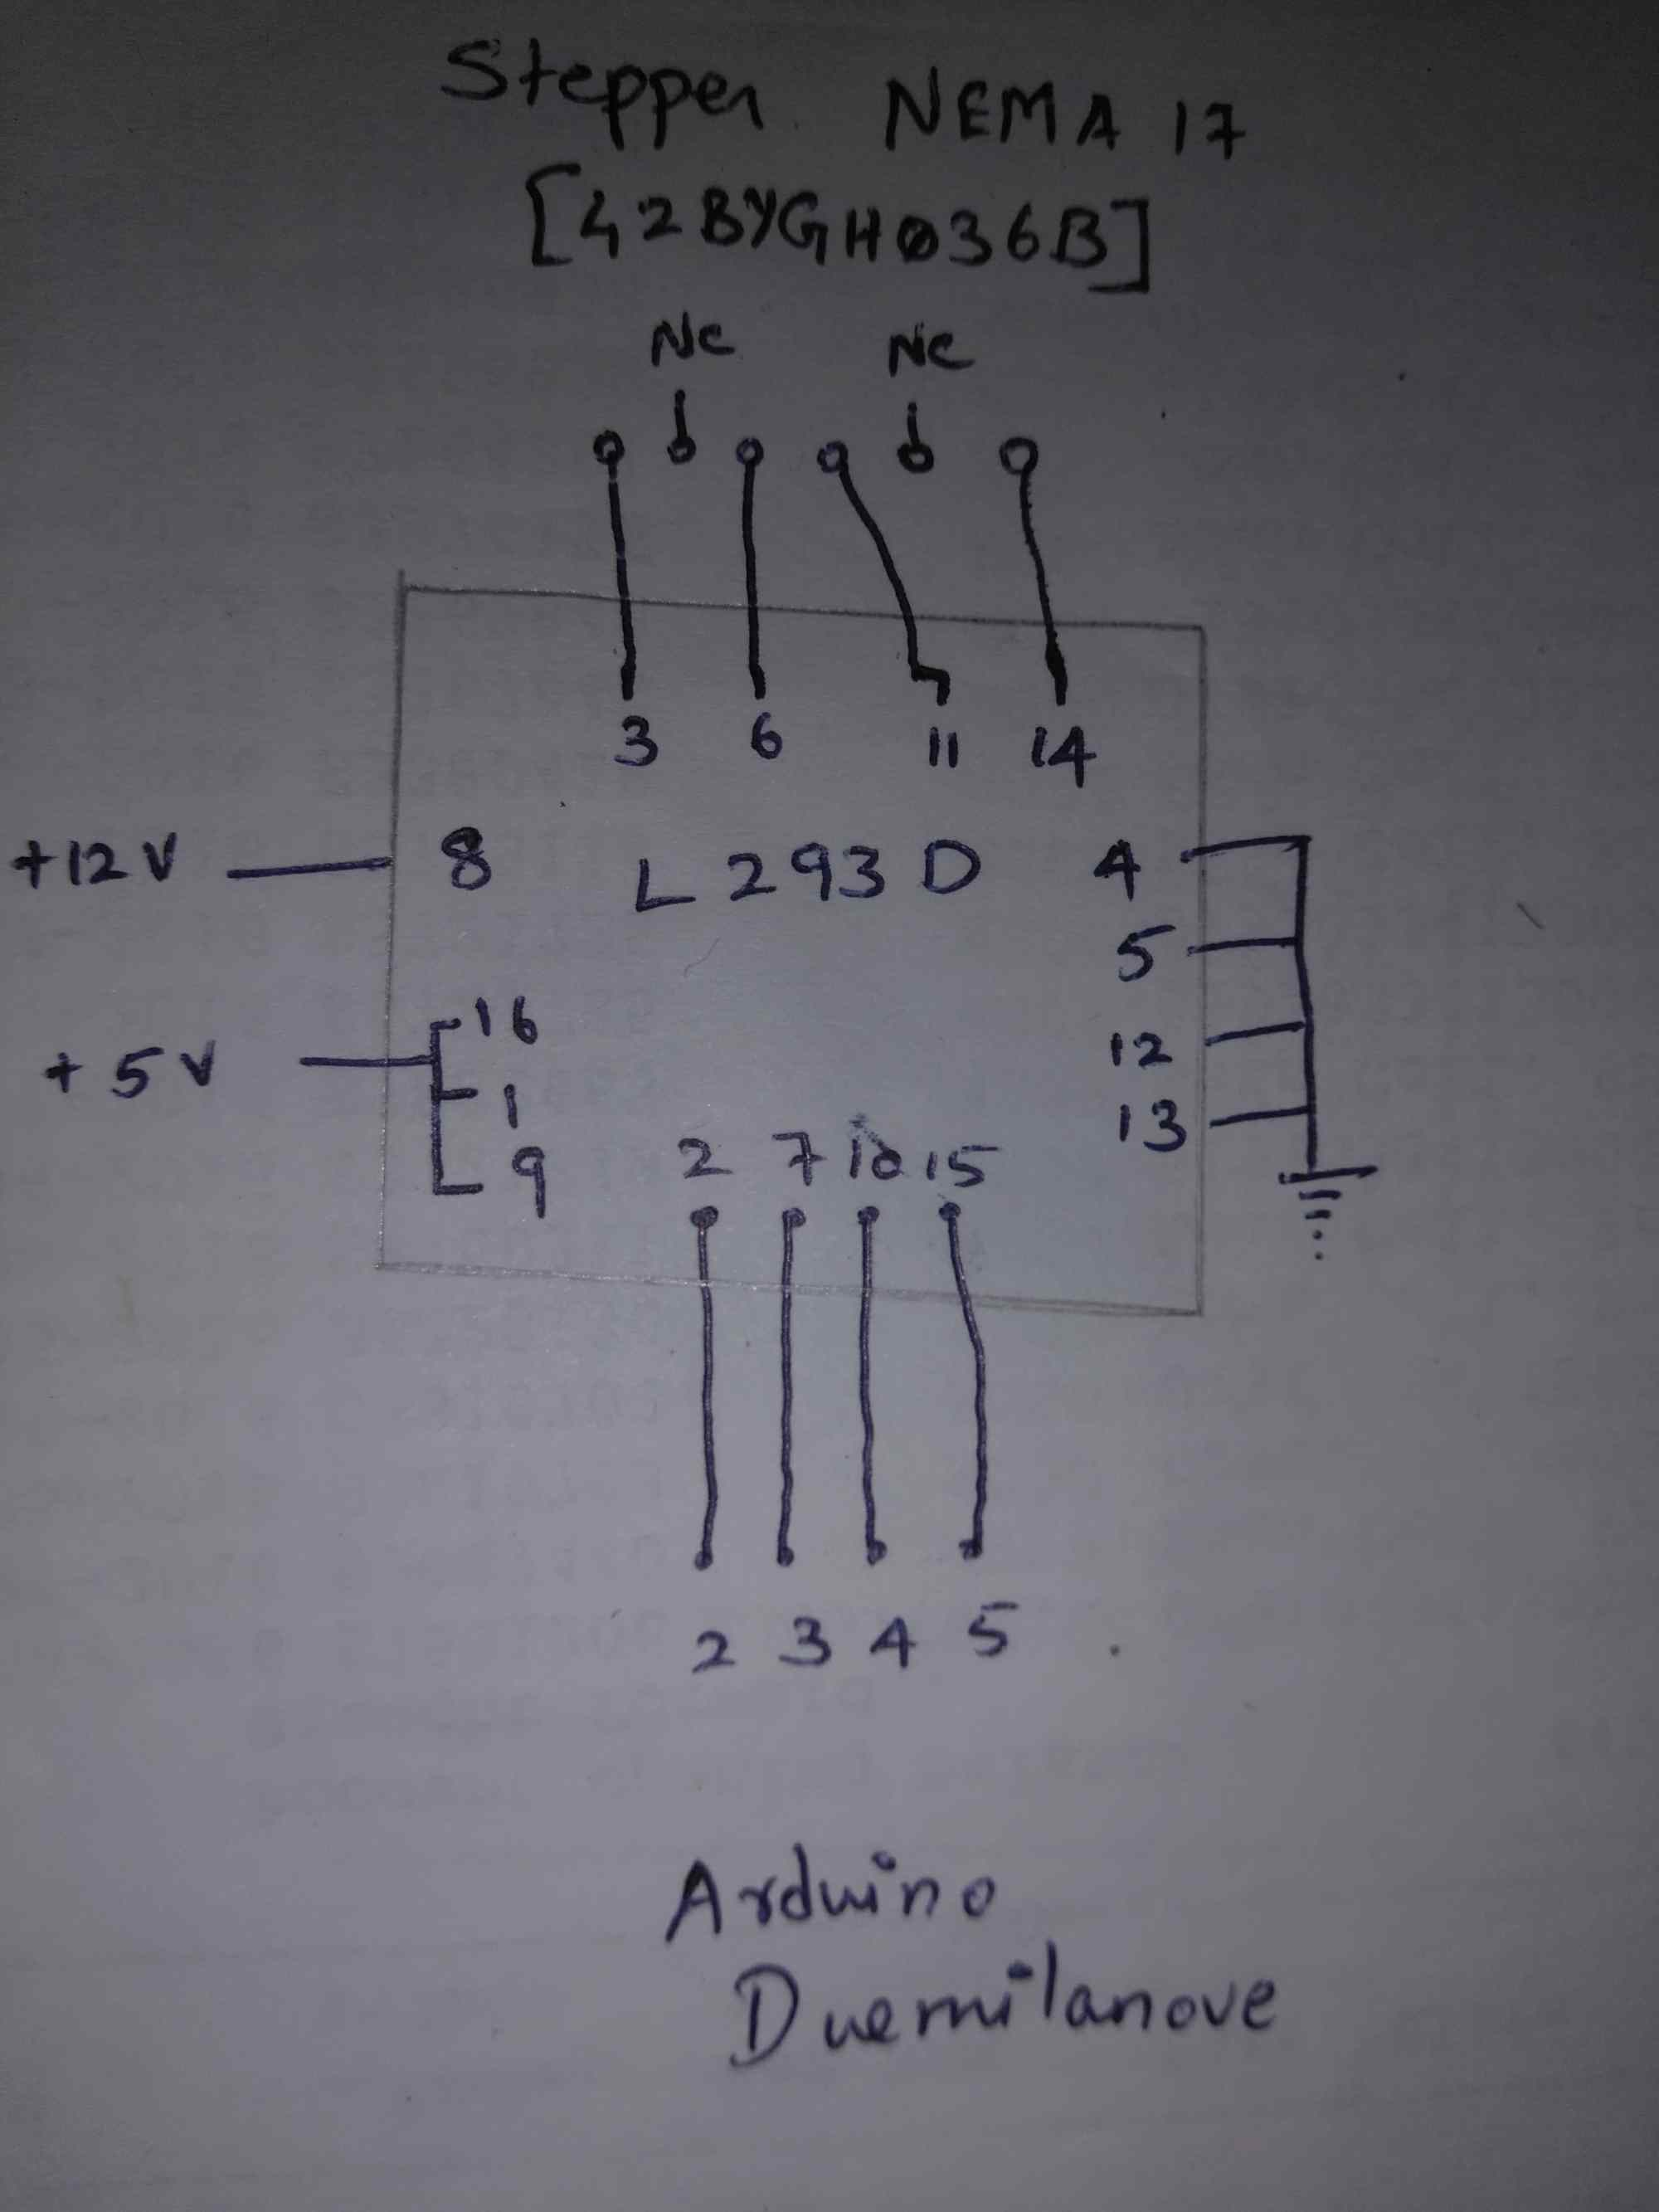 hight resolution of stepper motor just oscillates with arduino and l293d arduino stack haydon stepper motor wiring diagram